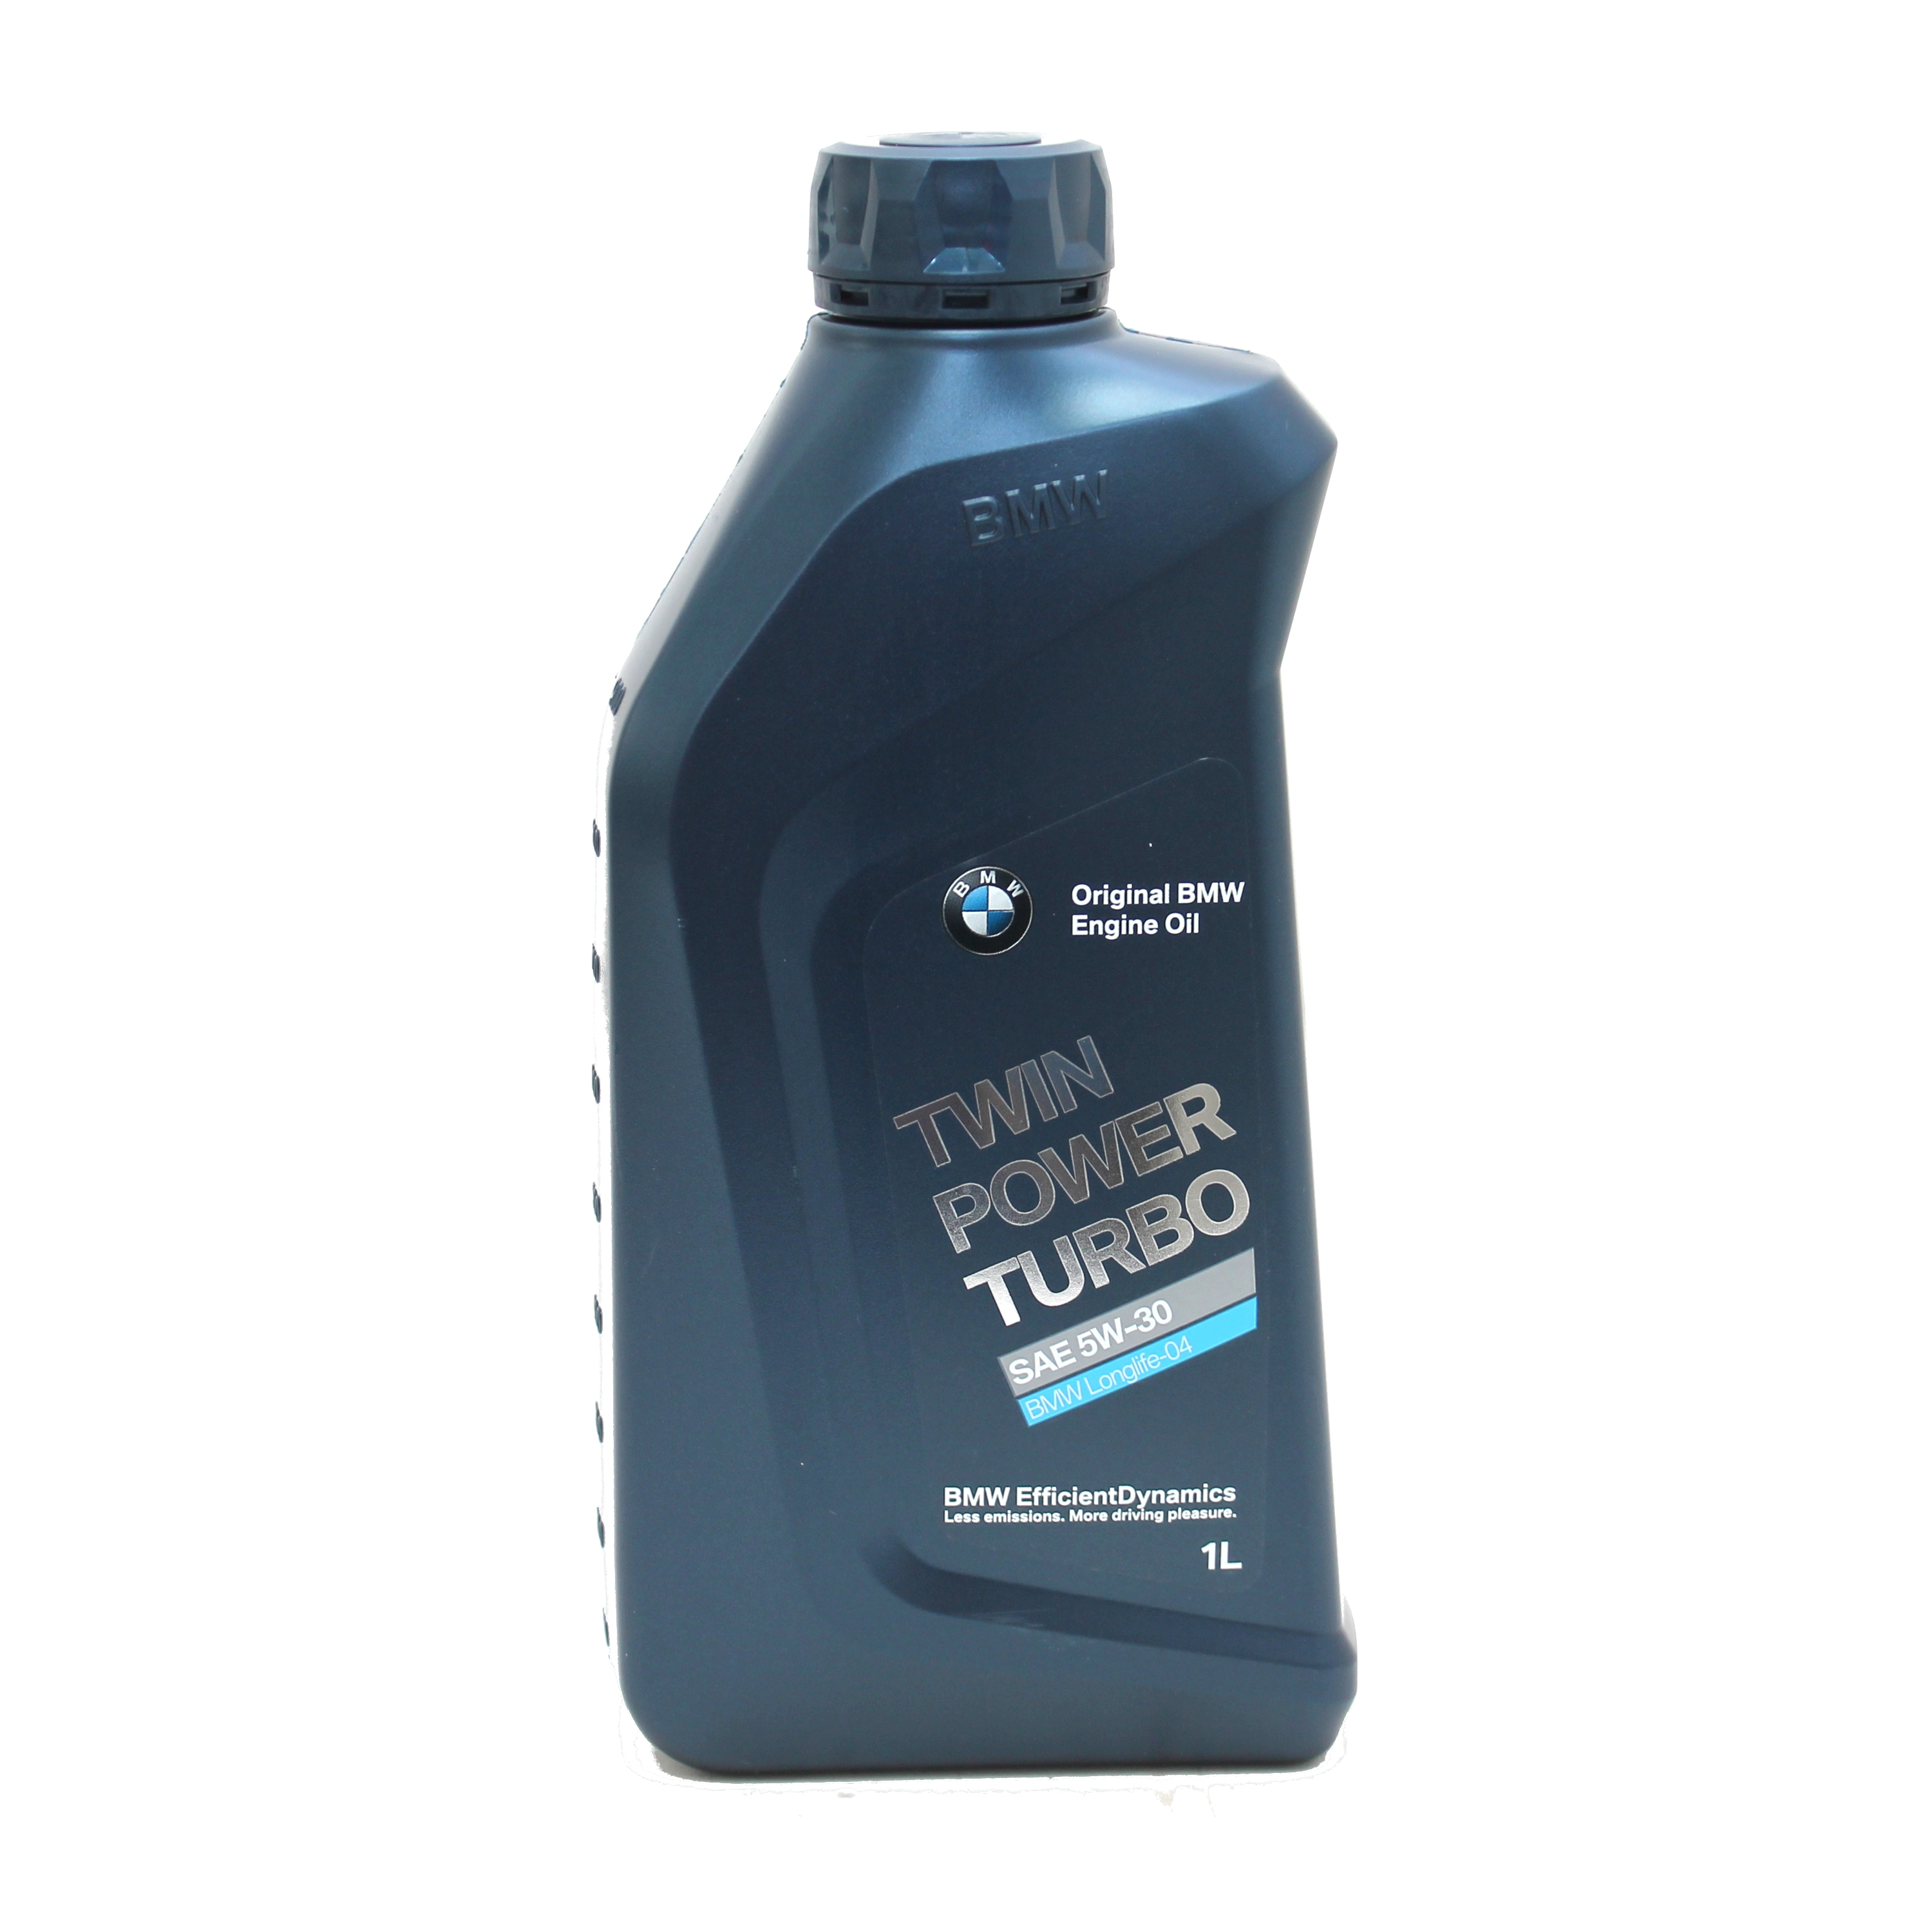 Genuine bmw engine oil 5w30 twin power turbo longlife 04 1 for Motor oil for bmw